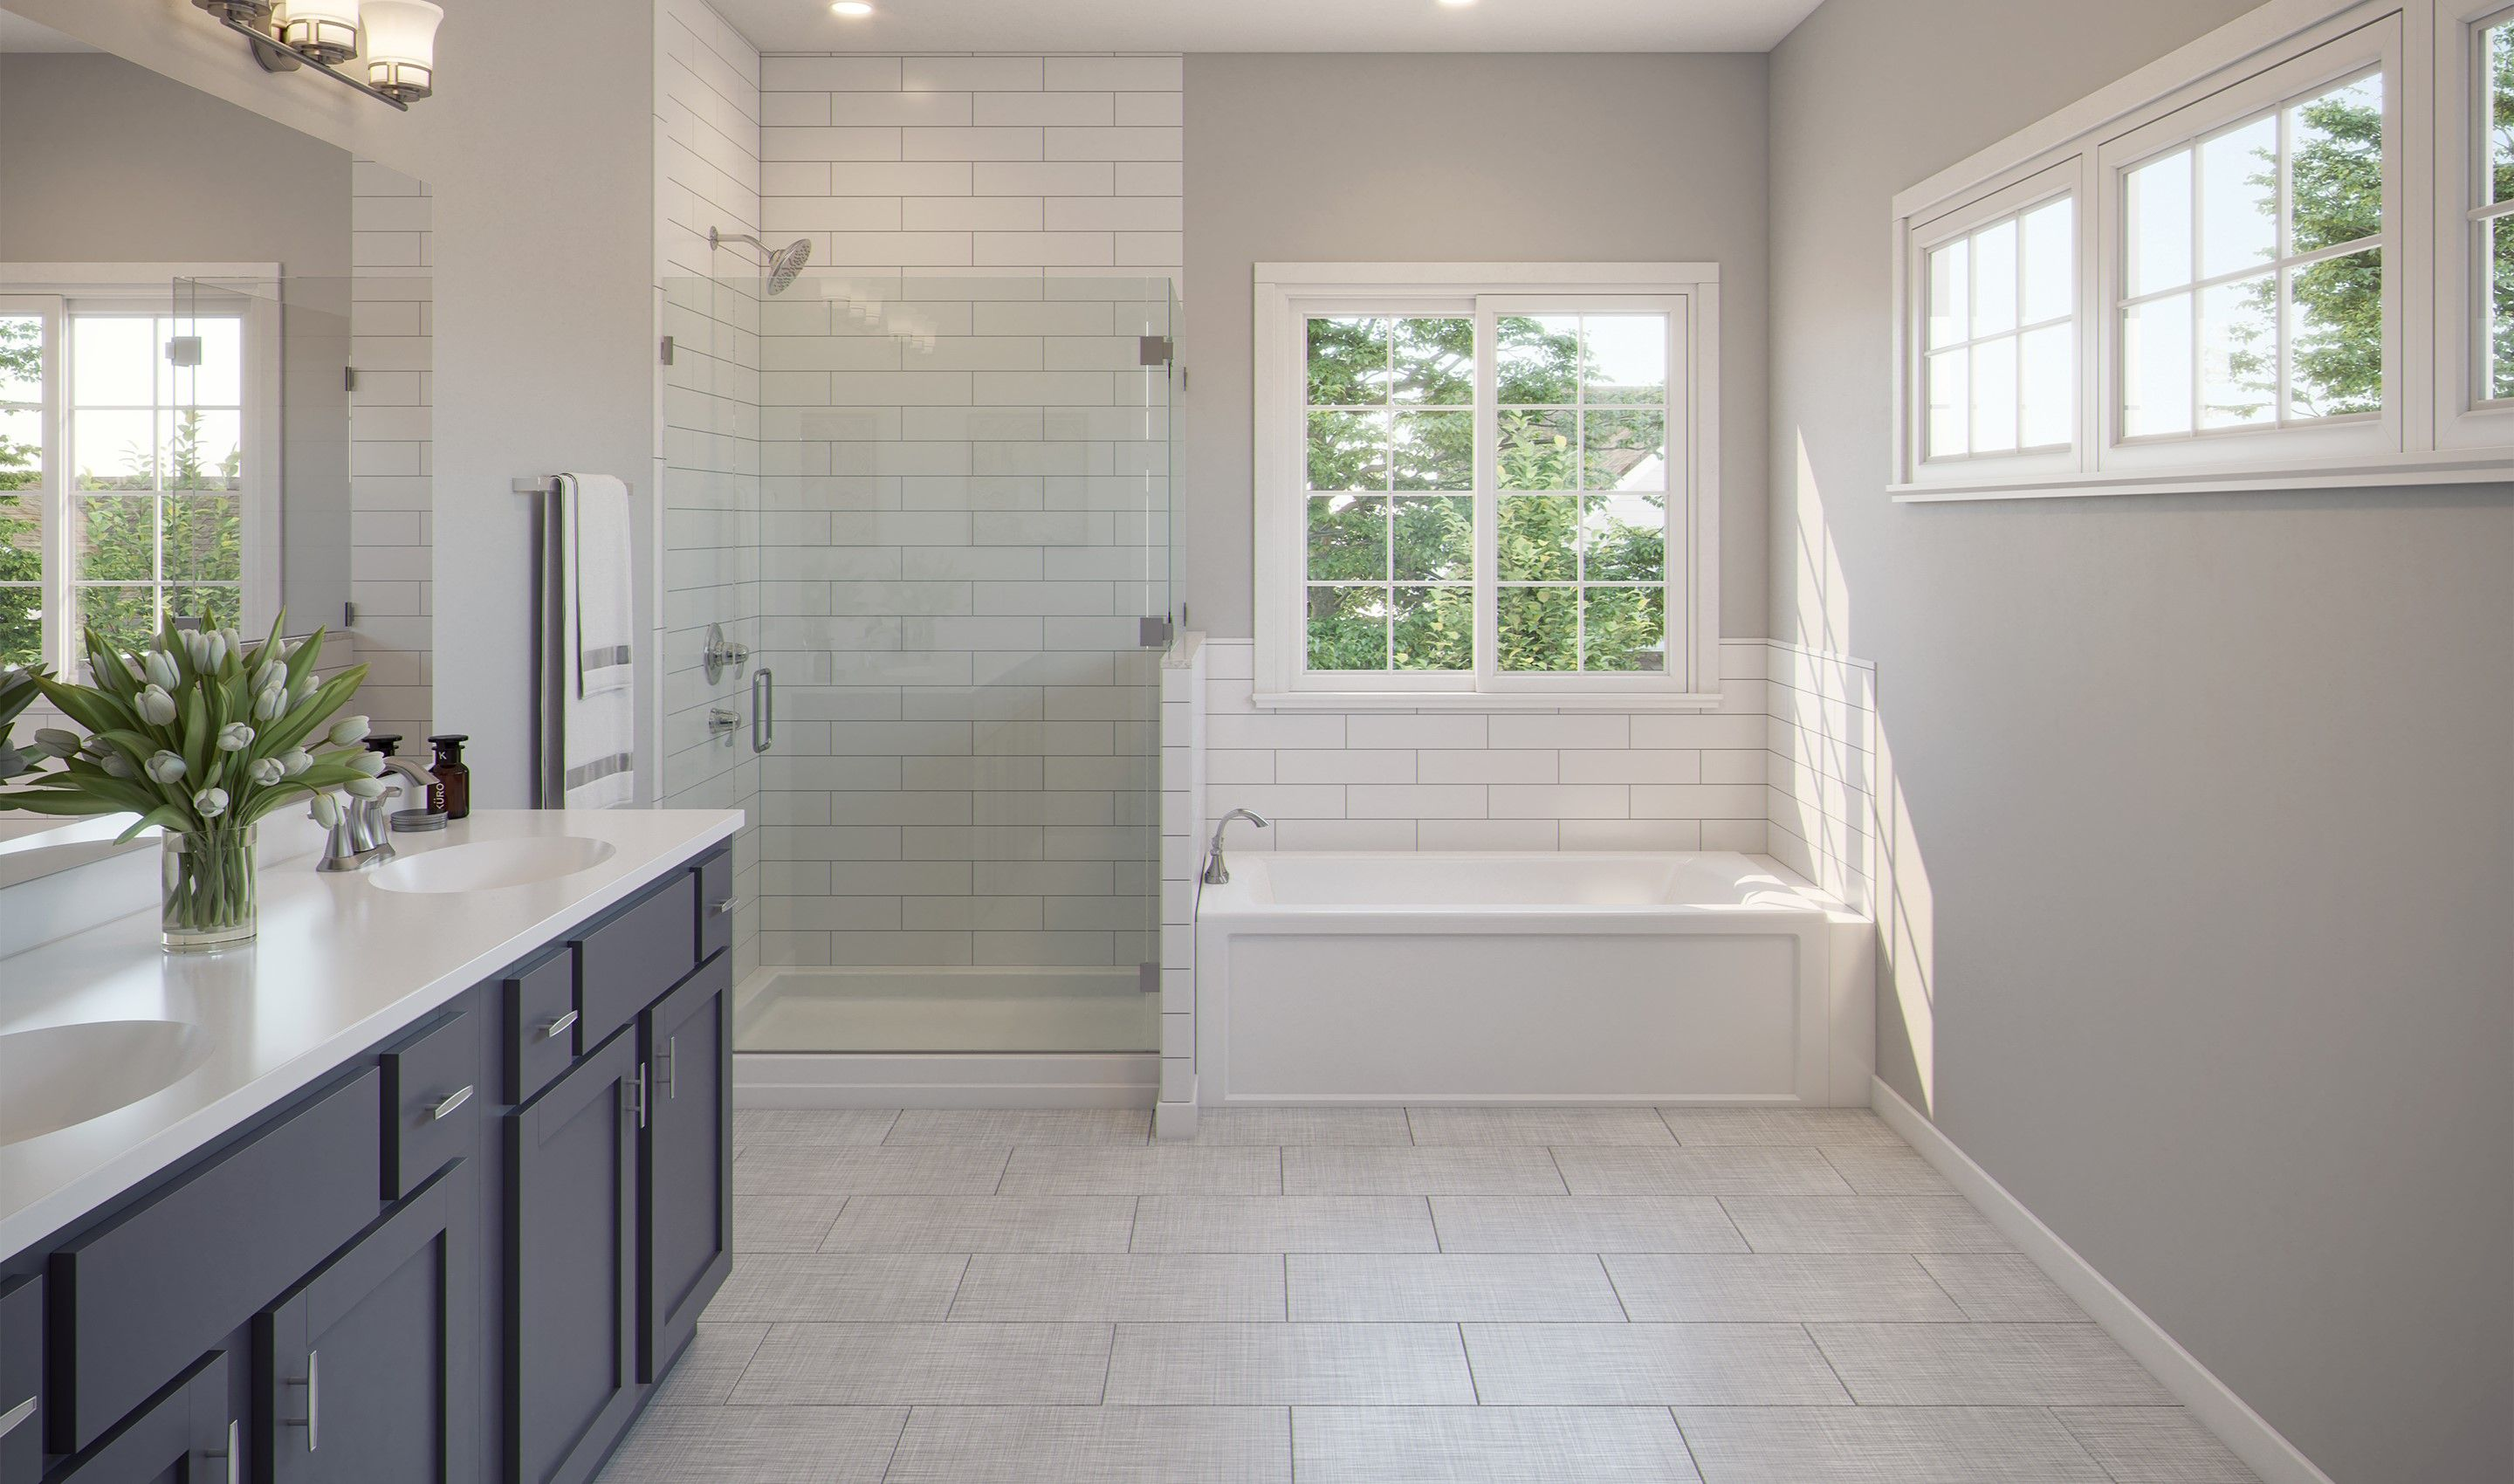 Bathroom featured in the Bradie By K. Hovnanian® Homes in Chicago, IL